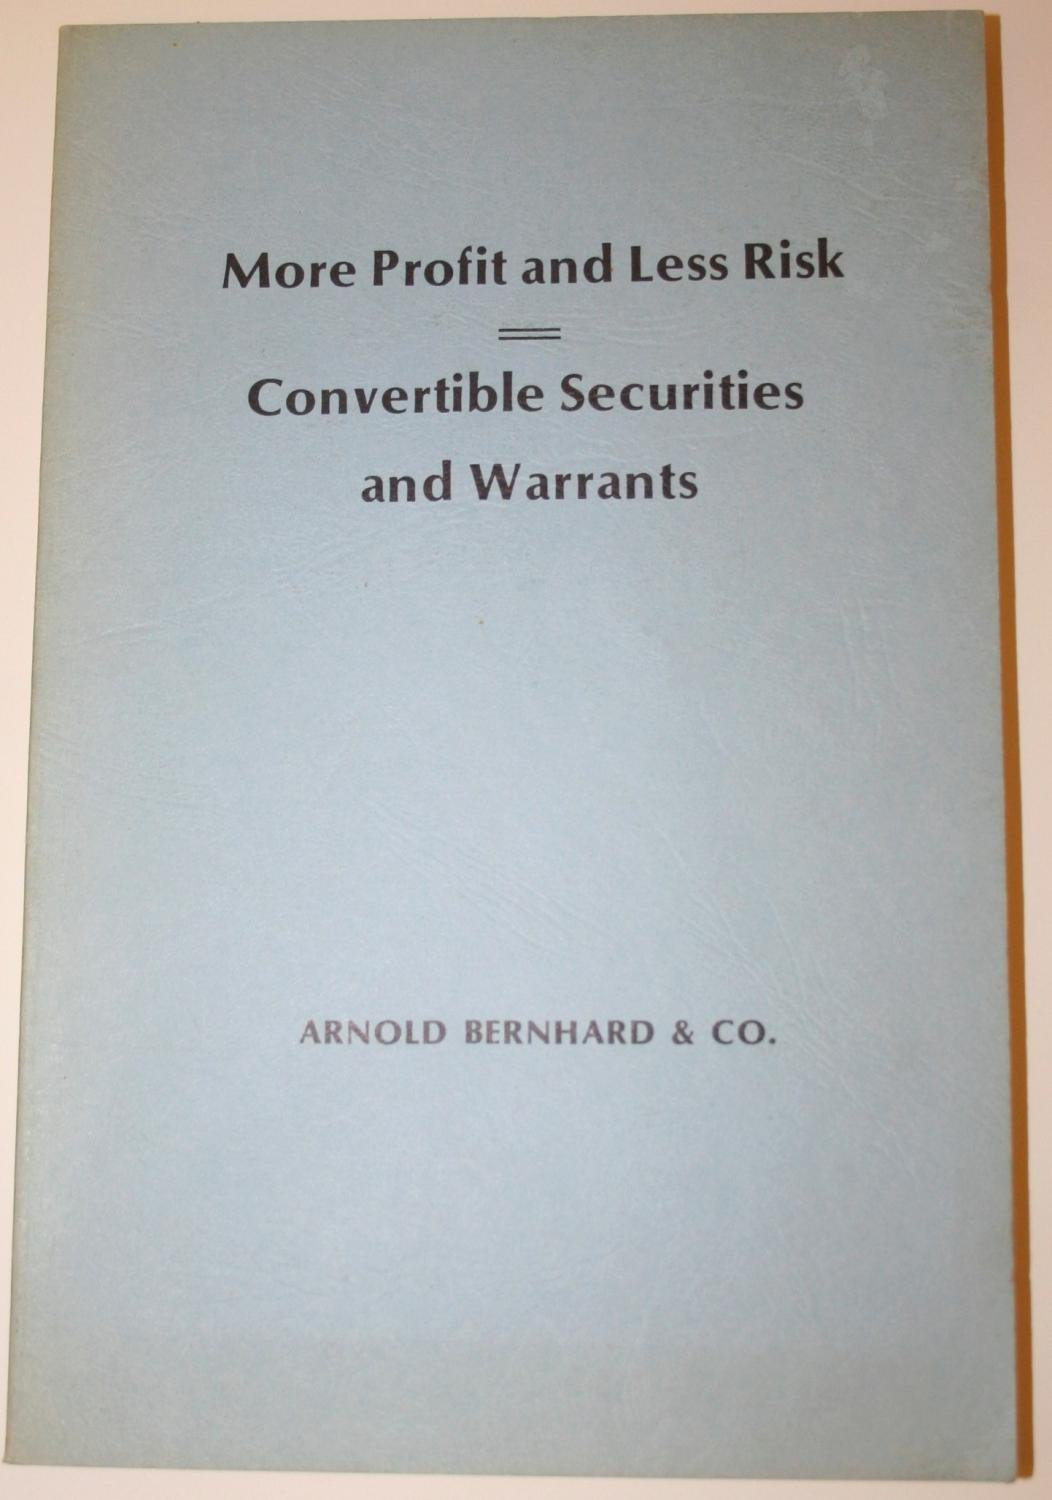 More Profit and Less Risk, Convertible Securities and